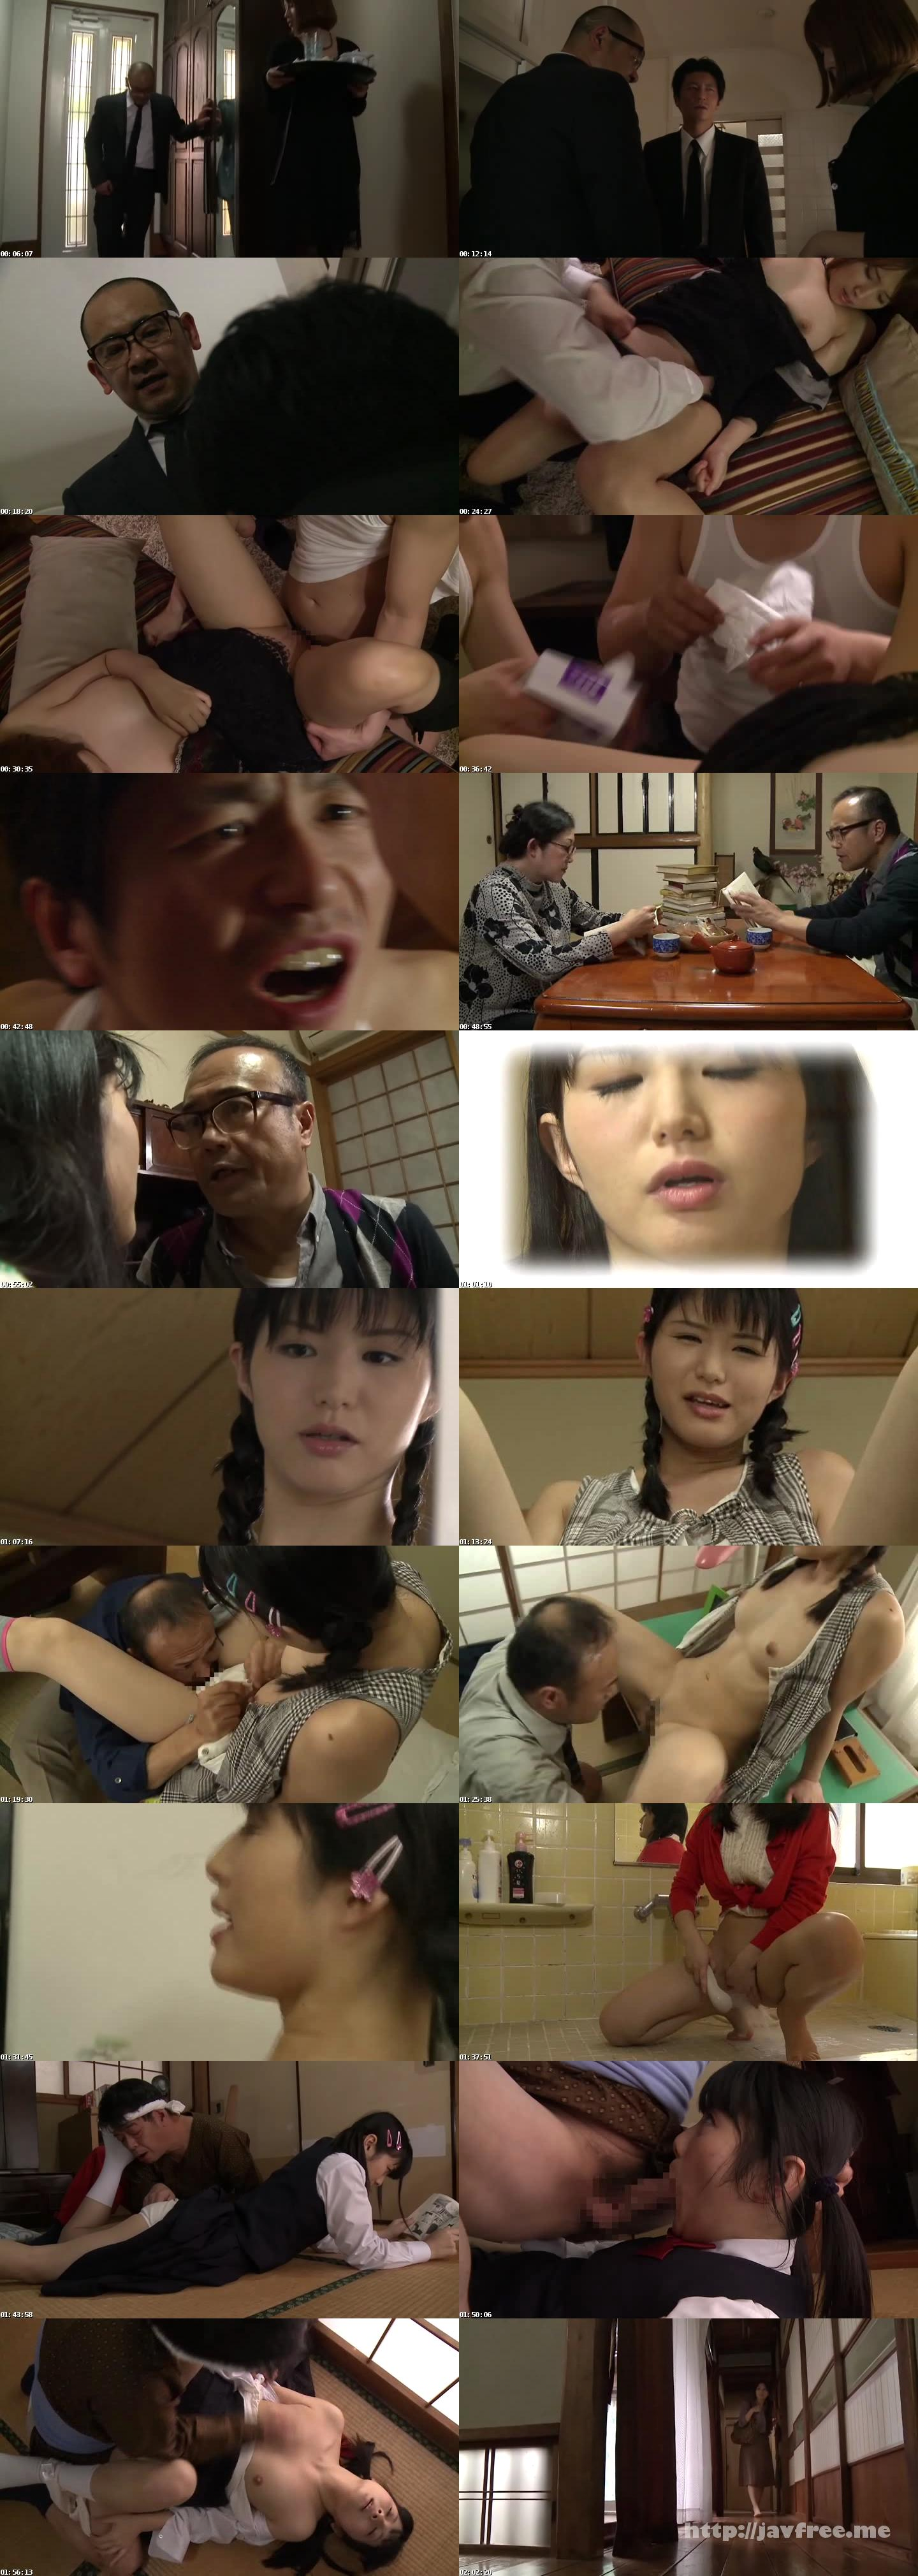 [FAJS-036] SEX戦争-家族編- - image FAJS-036 on https://javfree.me